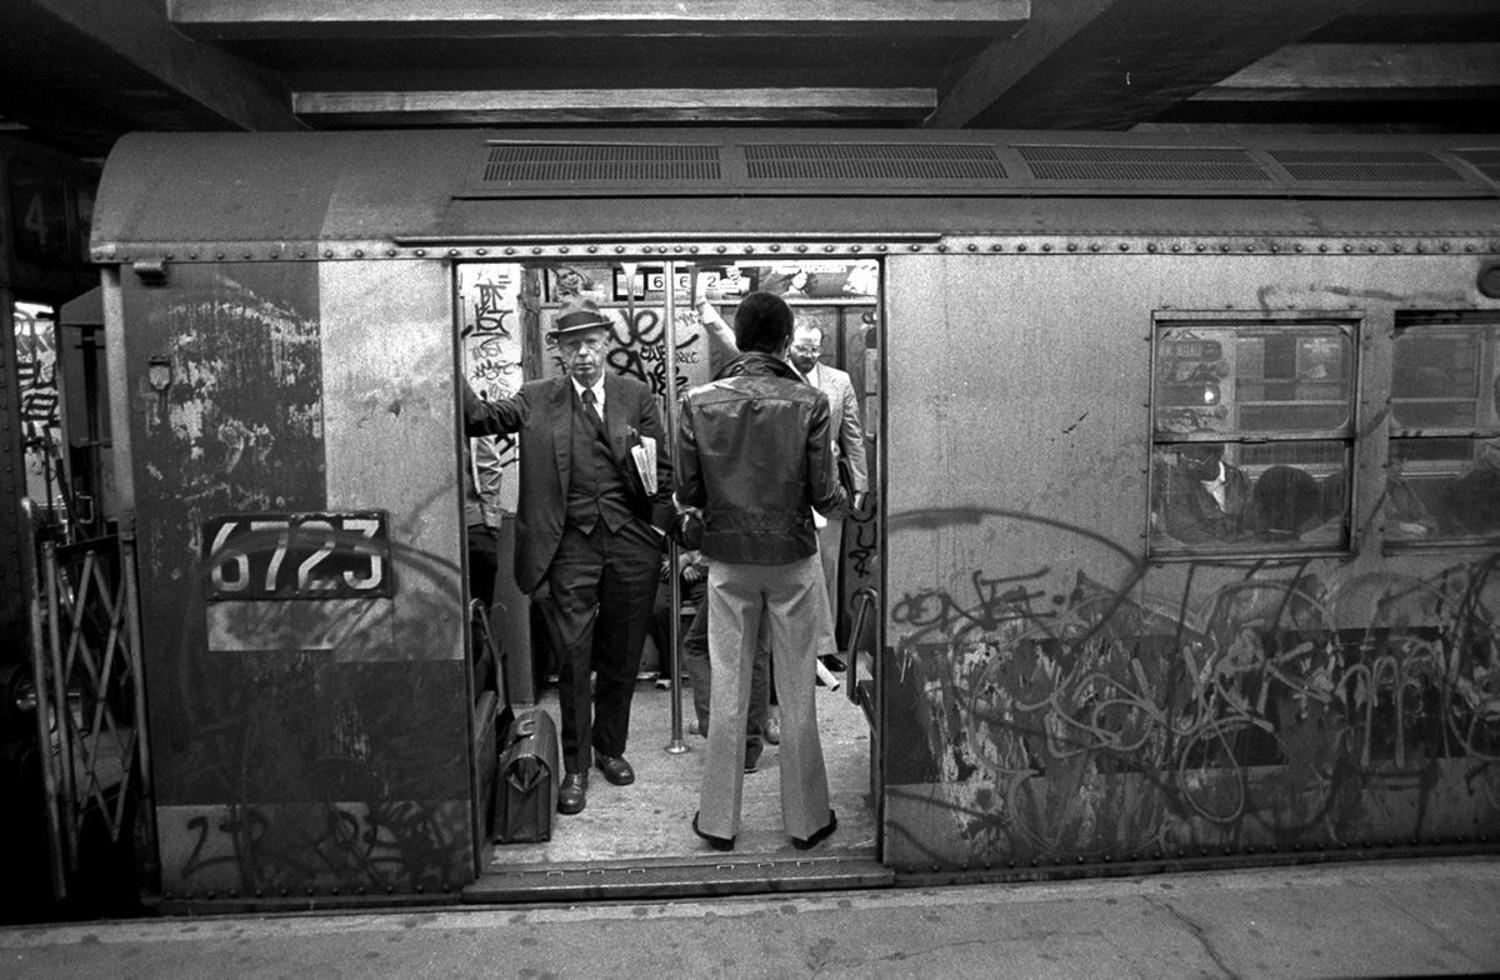 1980's: Subway riders head to work on a dirty, graffiti-covered train along the Lexington Avenue line in 1981.